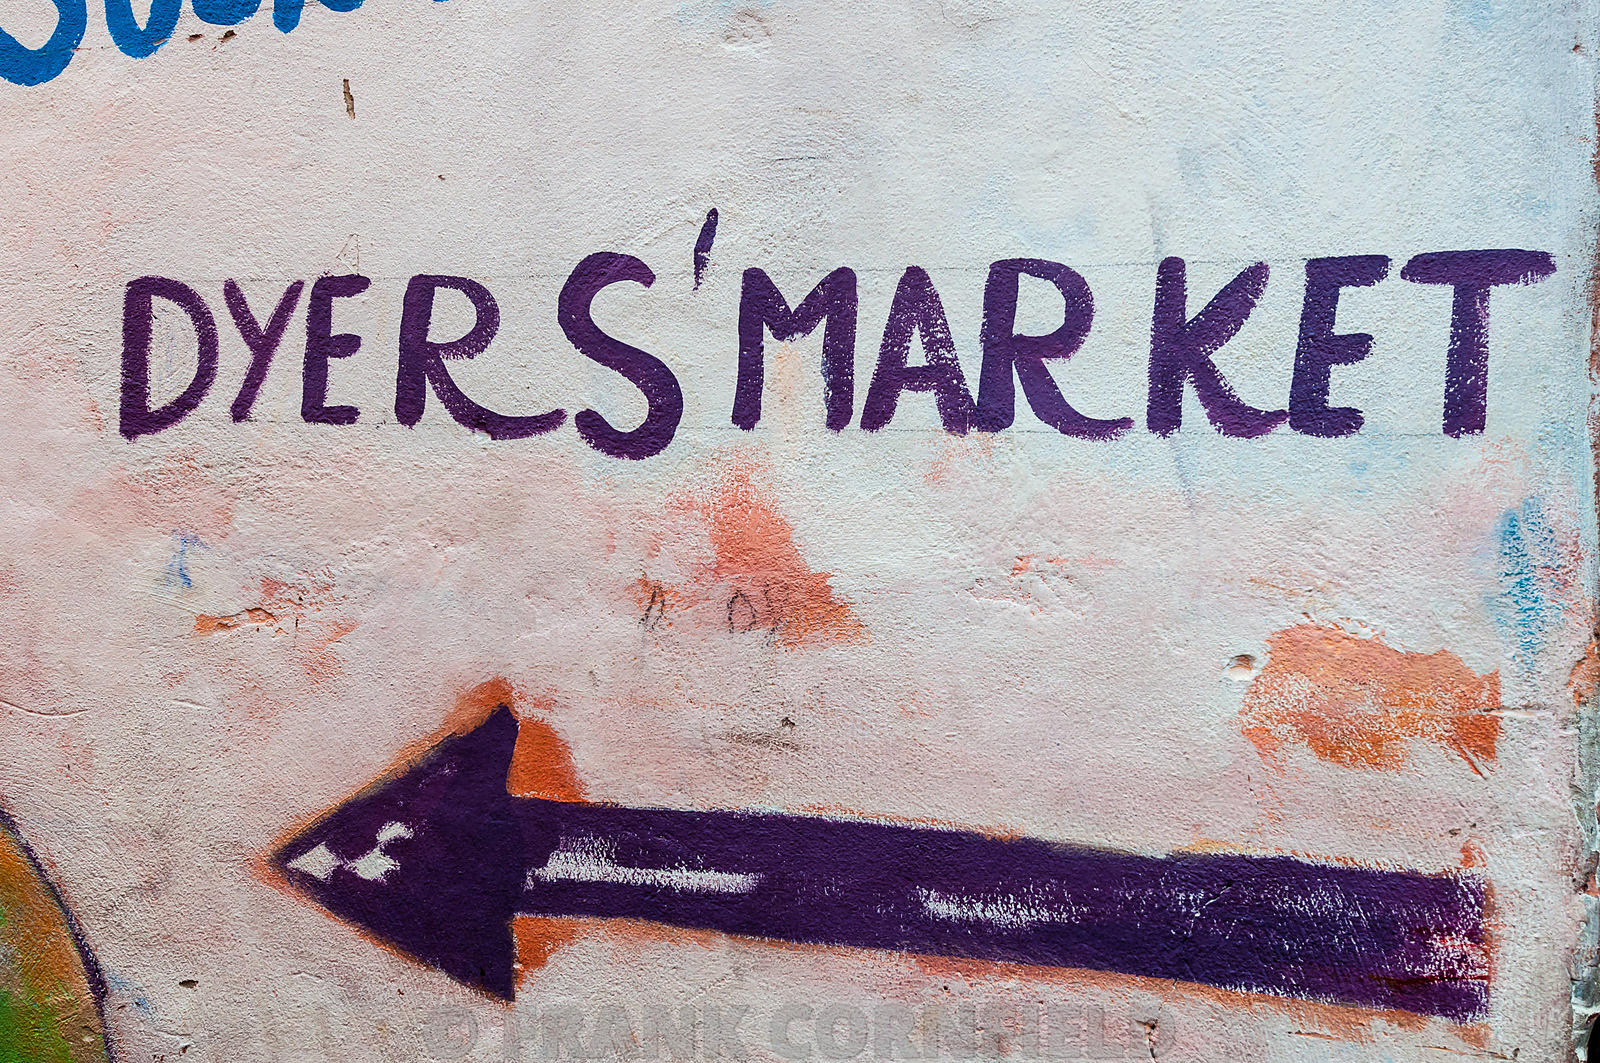 Dyers market sign